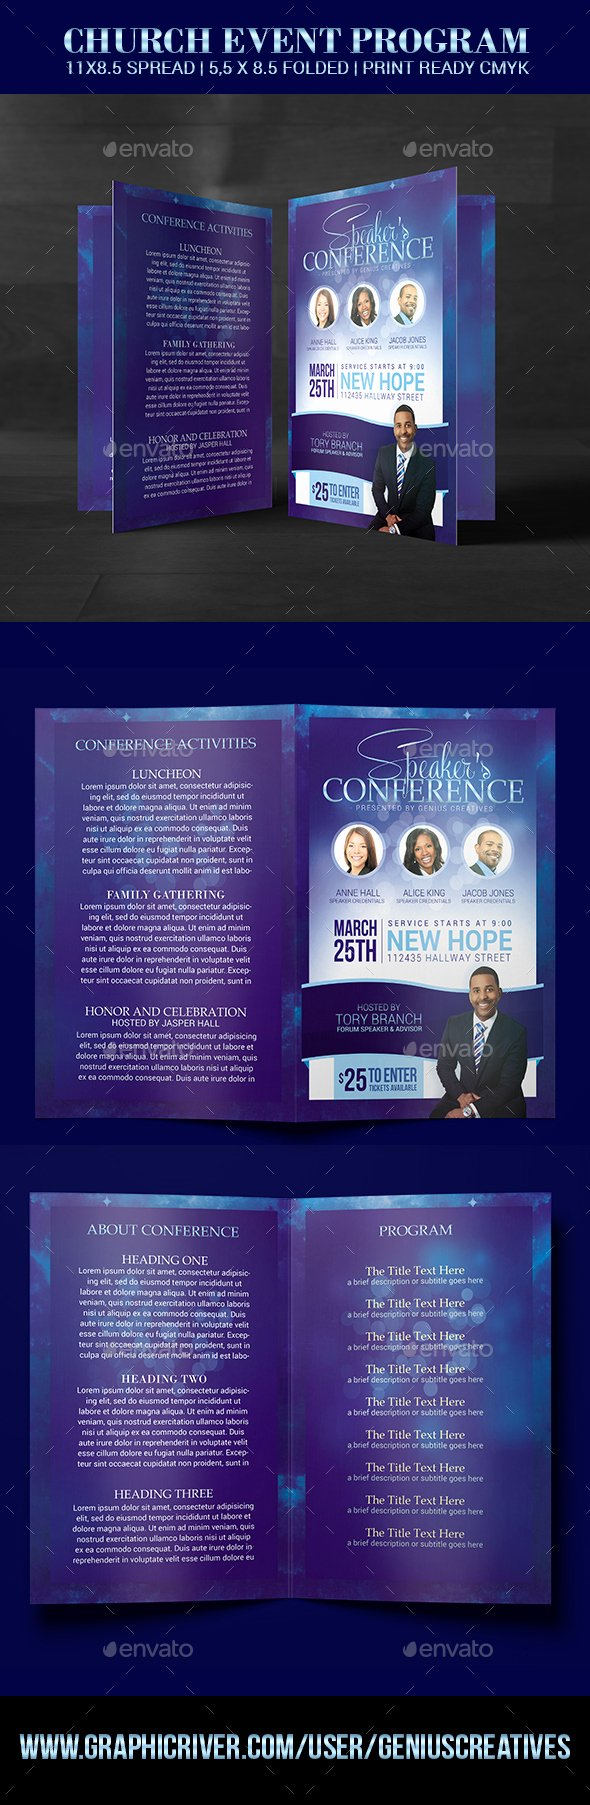 Conference Program Booklet Template Elegant Church Conference Program Template by Geniuscreatives